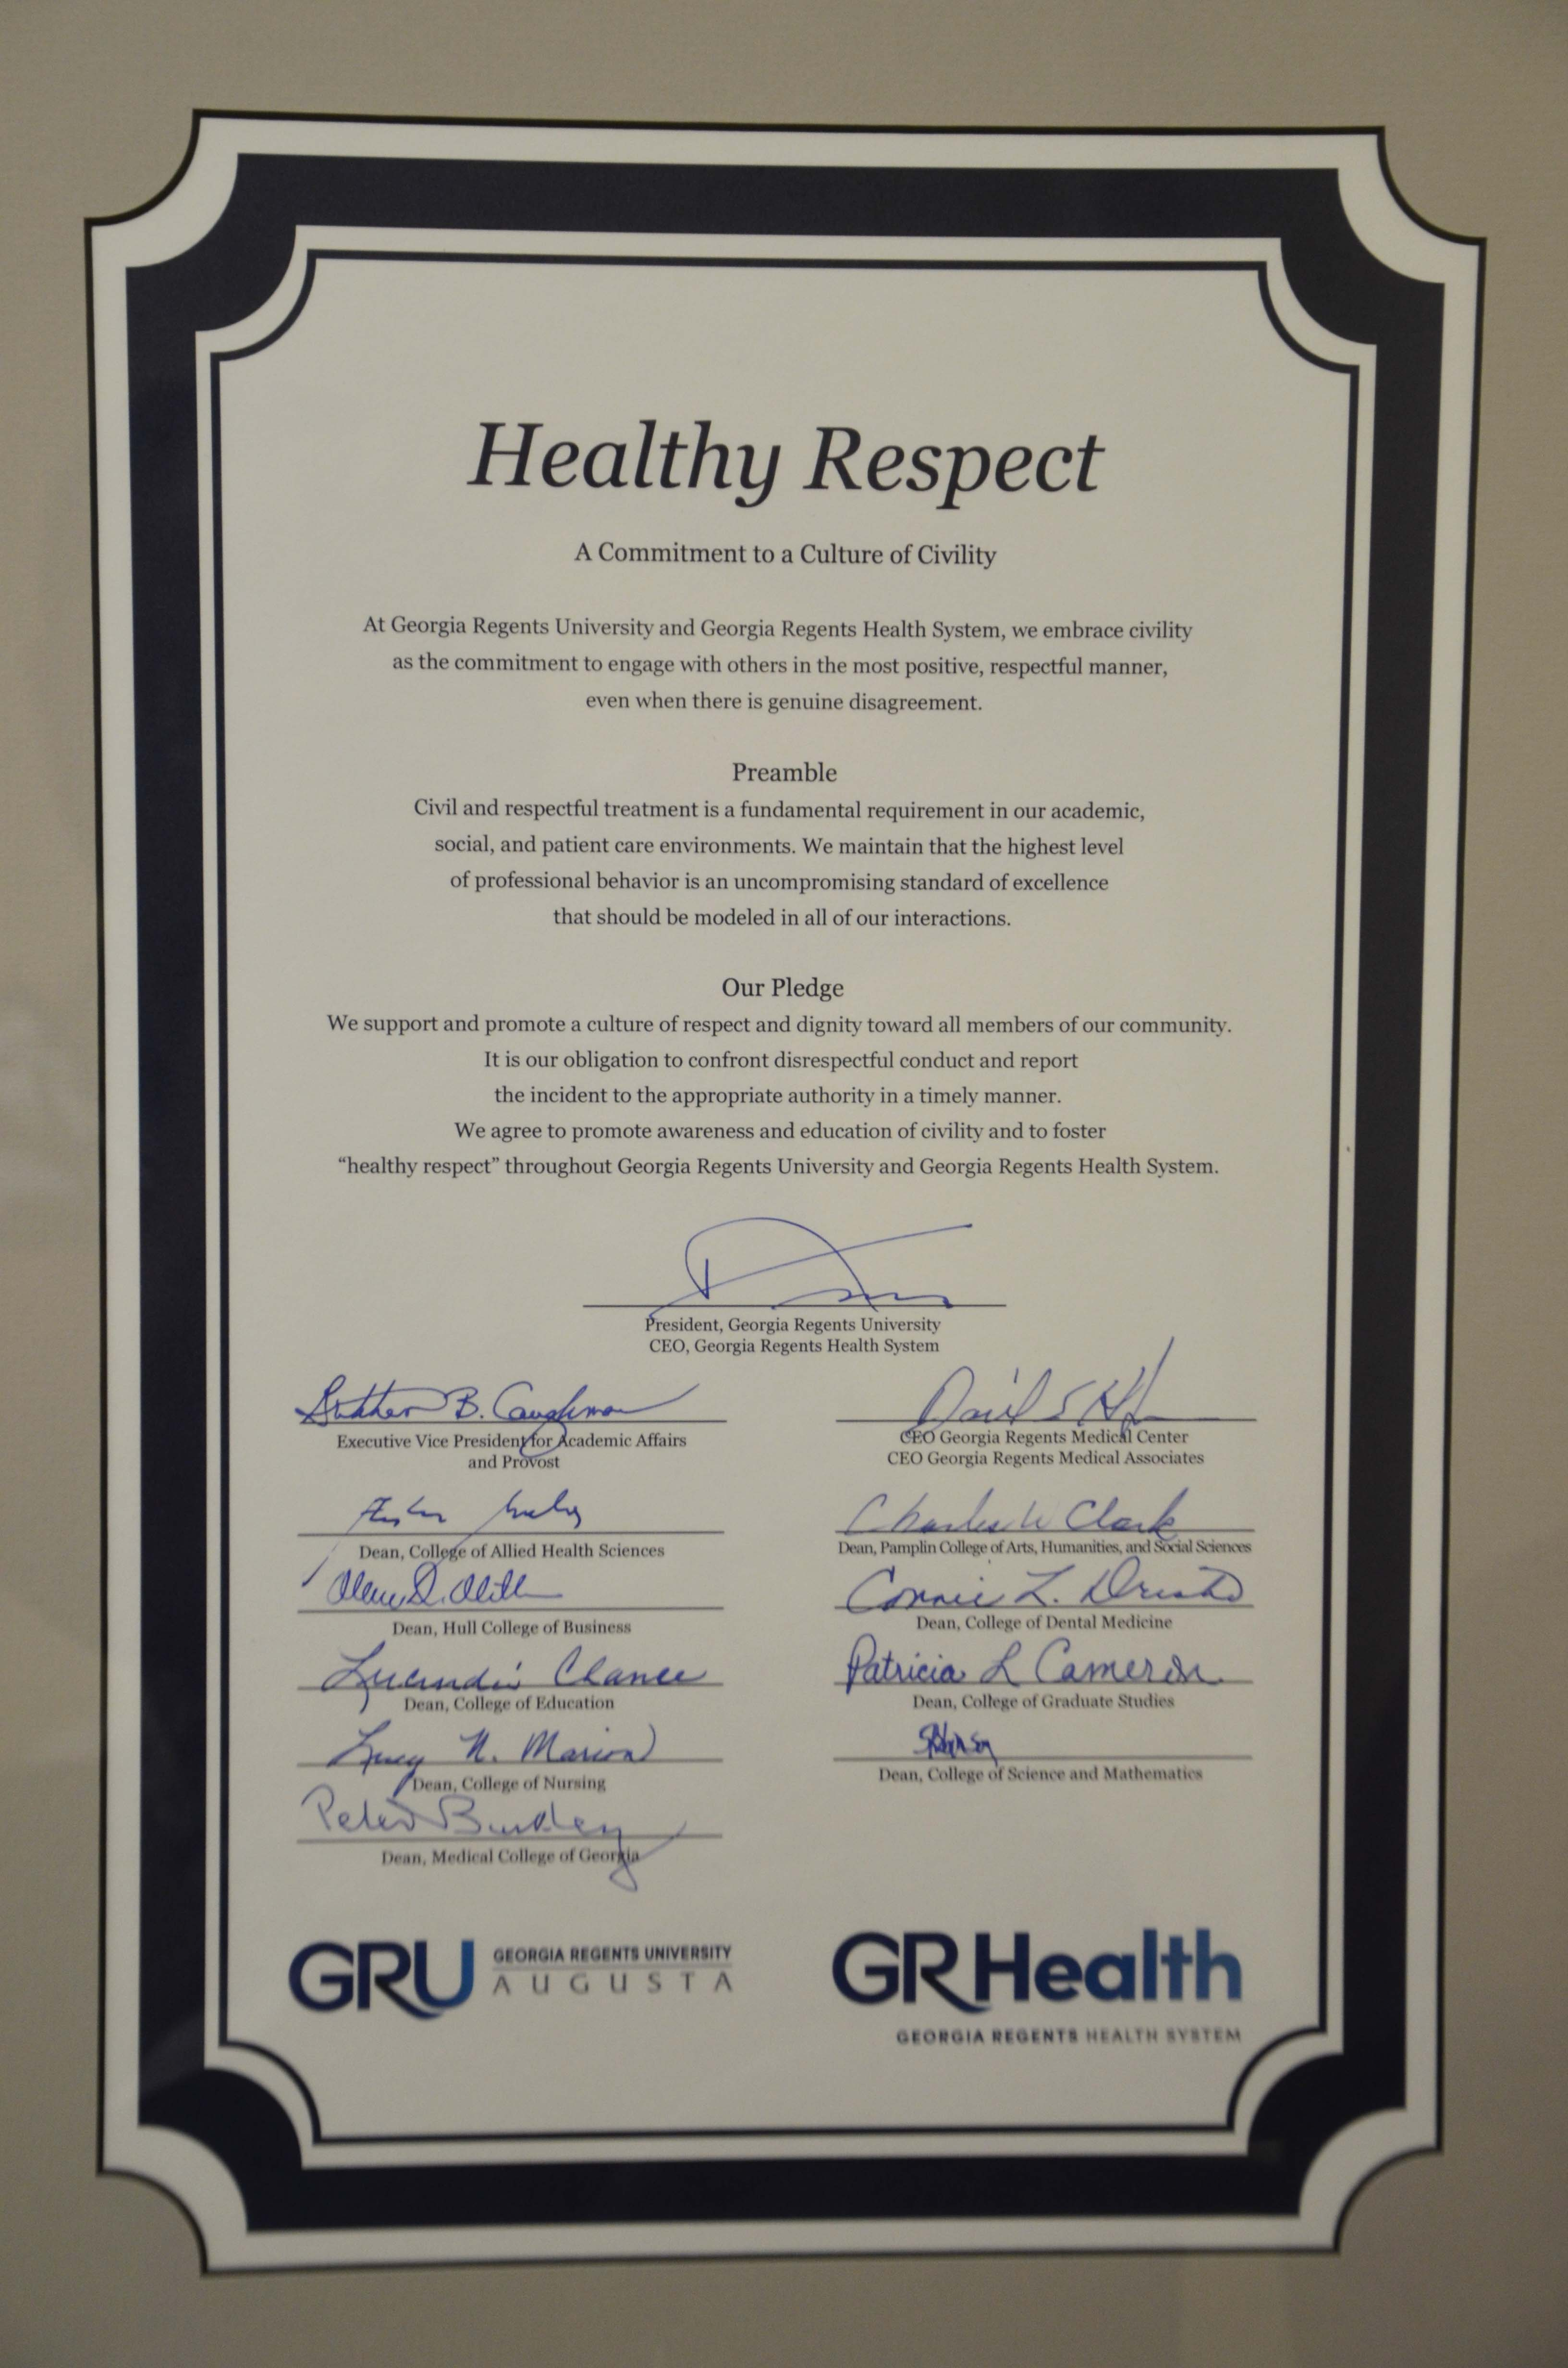 Healthy Respect charter